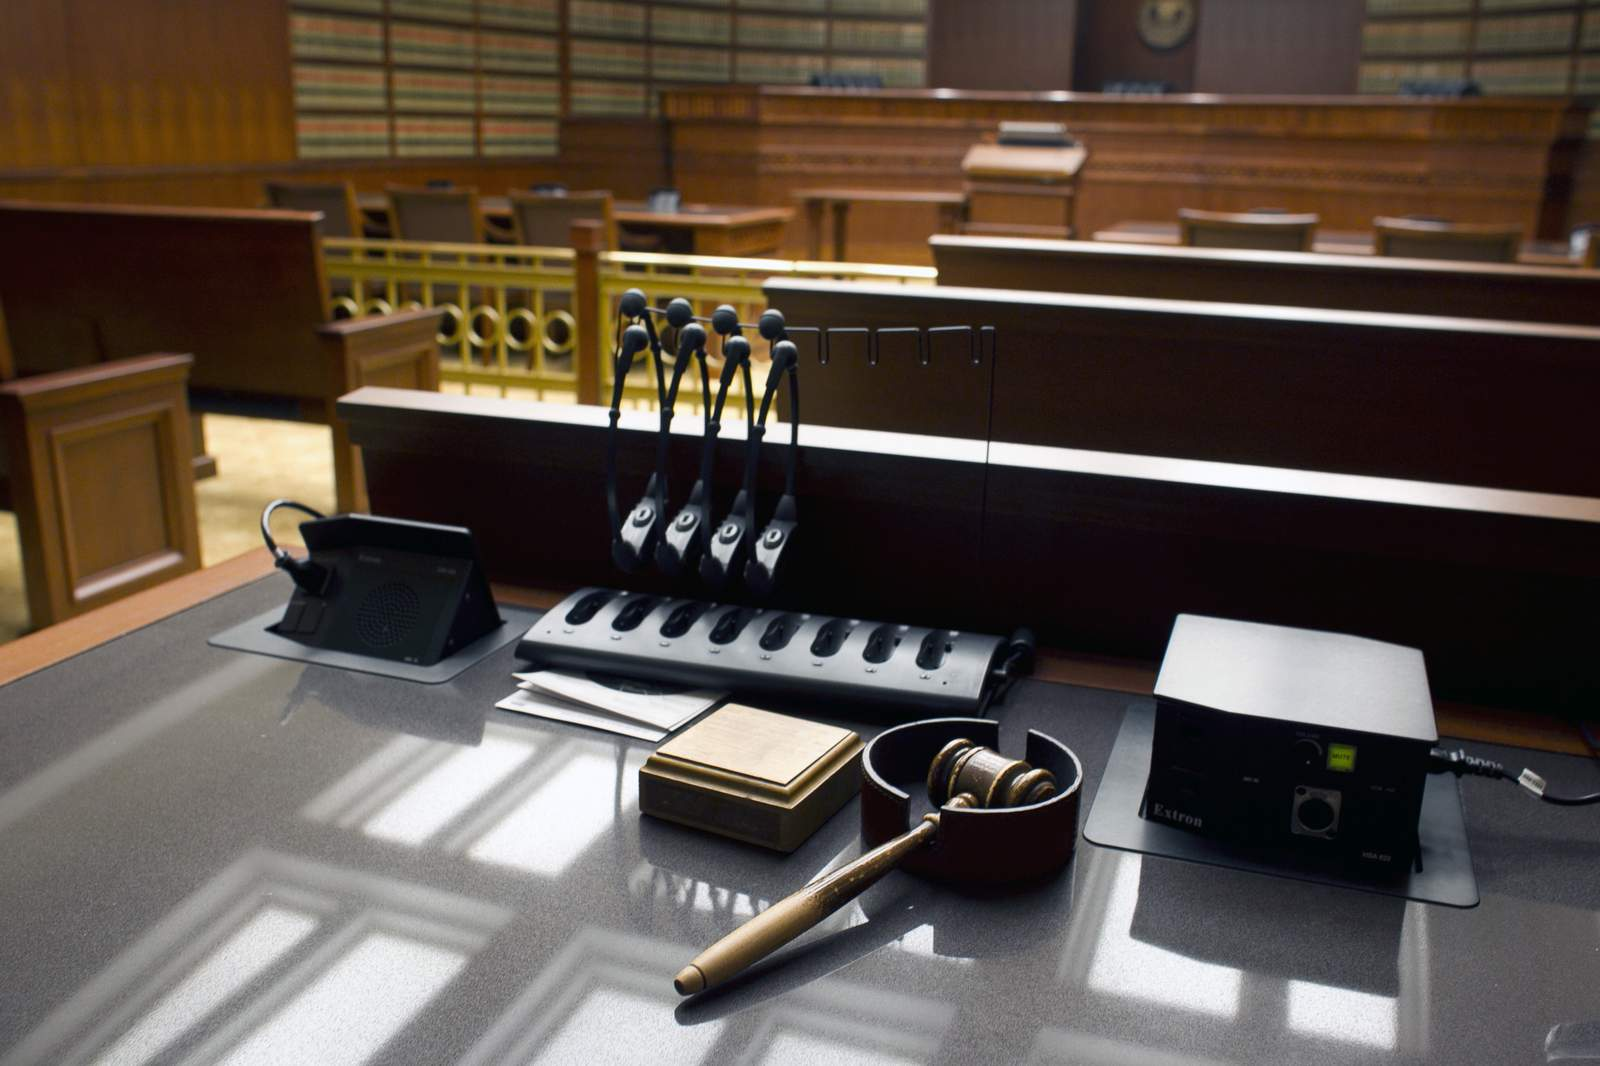 Man charged with threatening Hamtramck district court judge